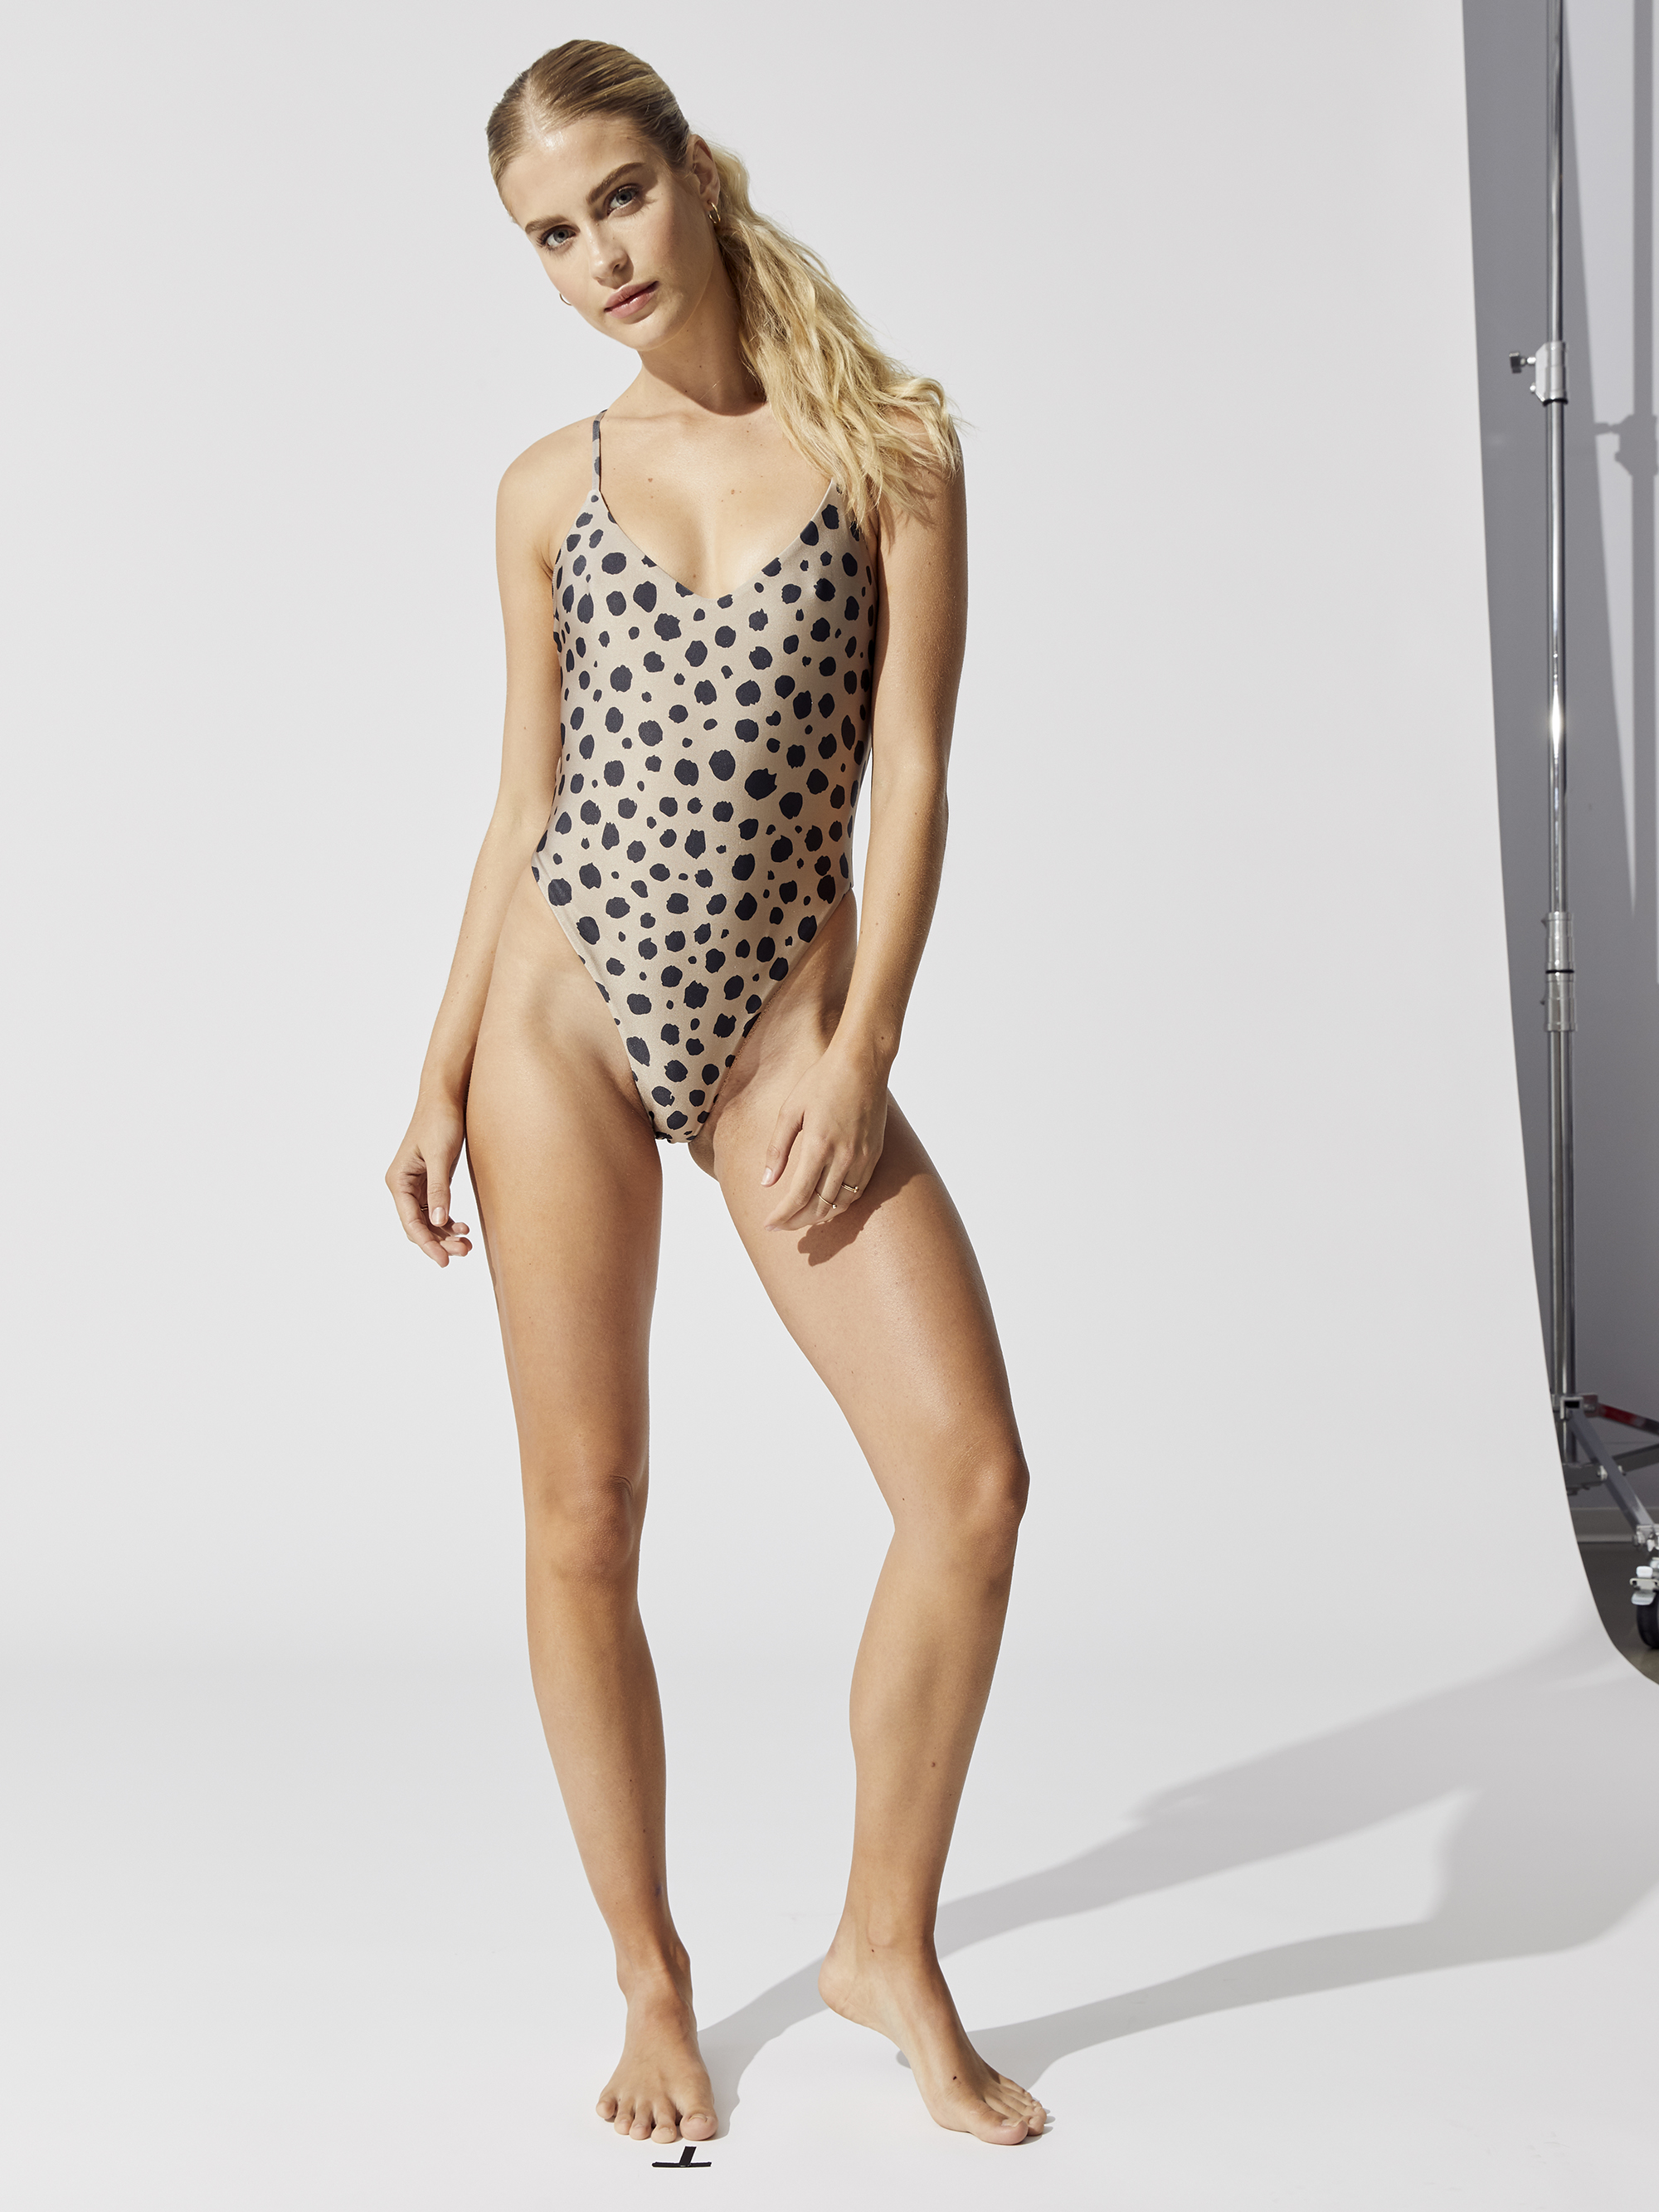 LNA-CLASSIC-ONE-PIECE-CHEETAH-0017-B.jpg